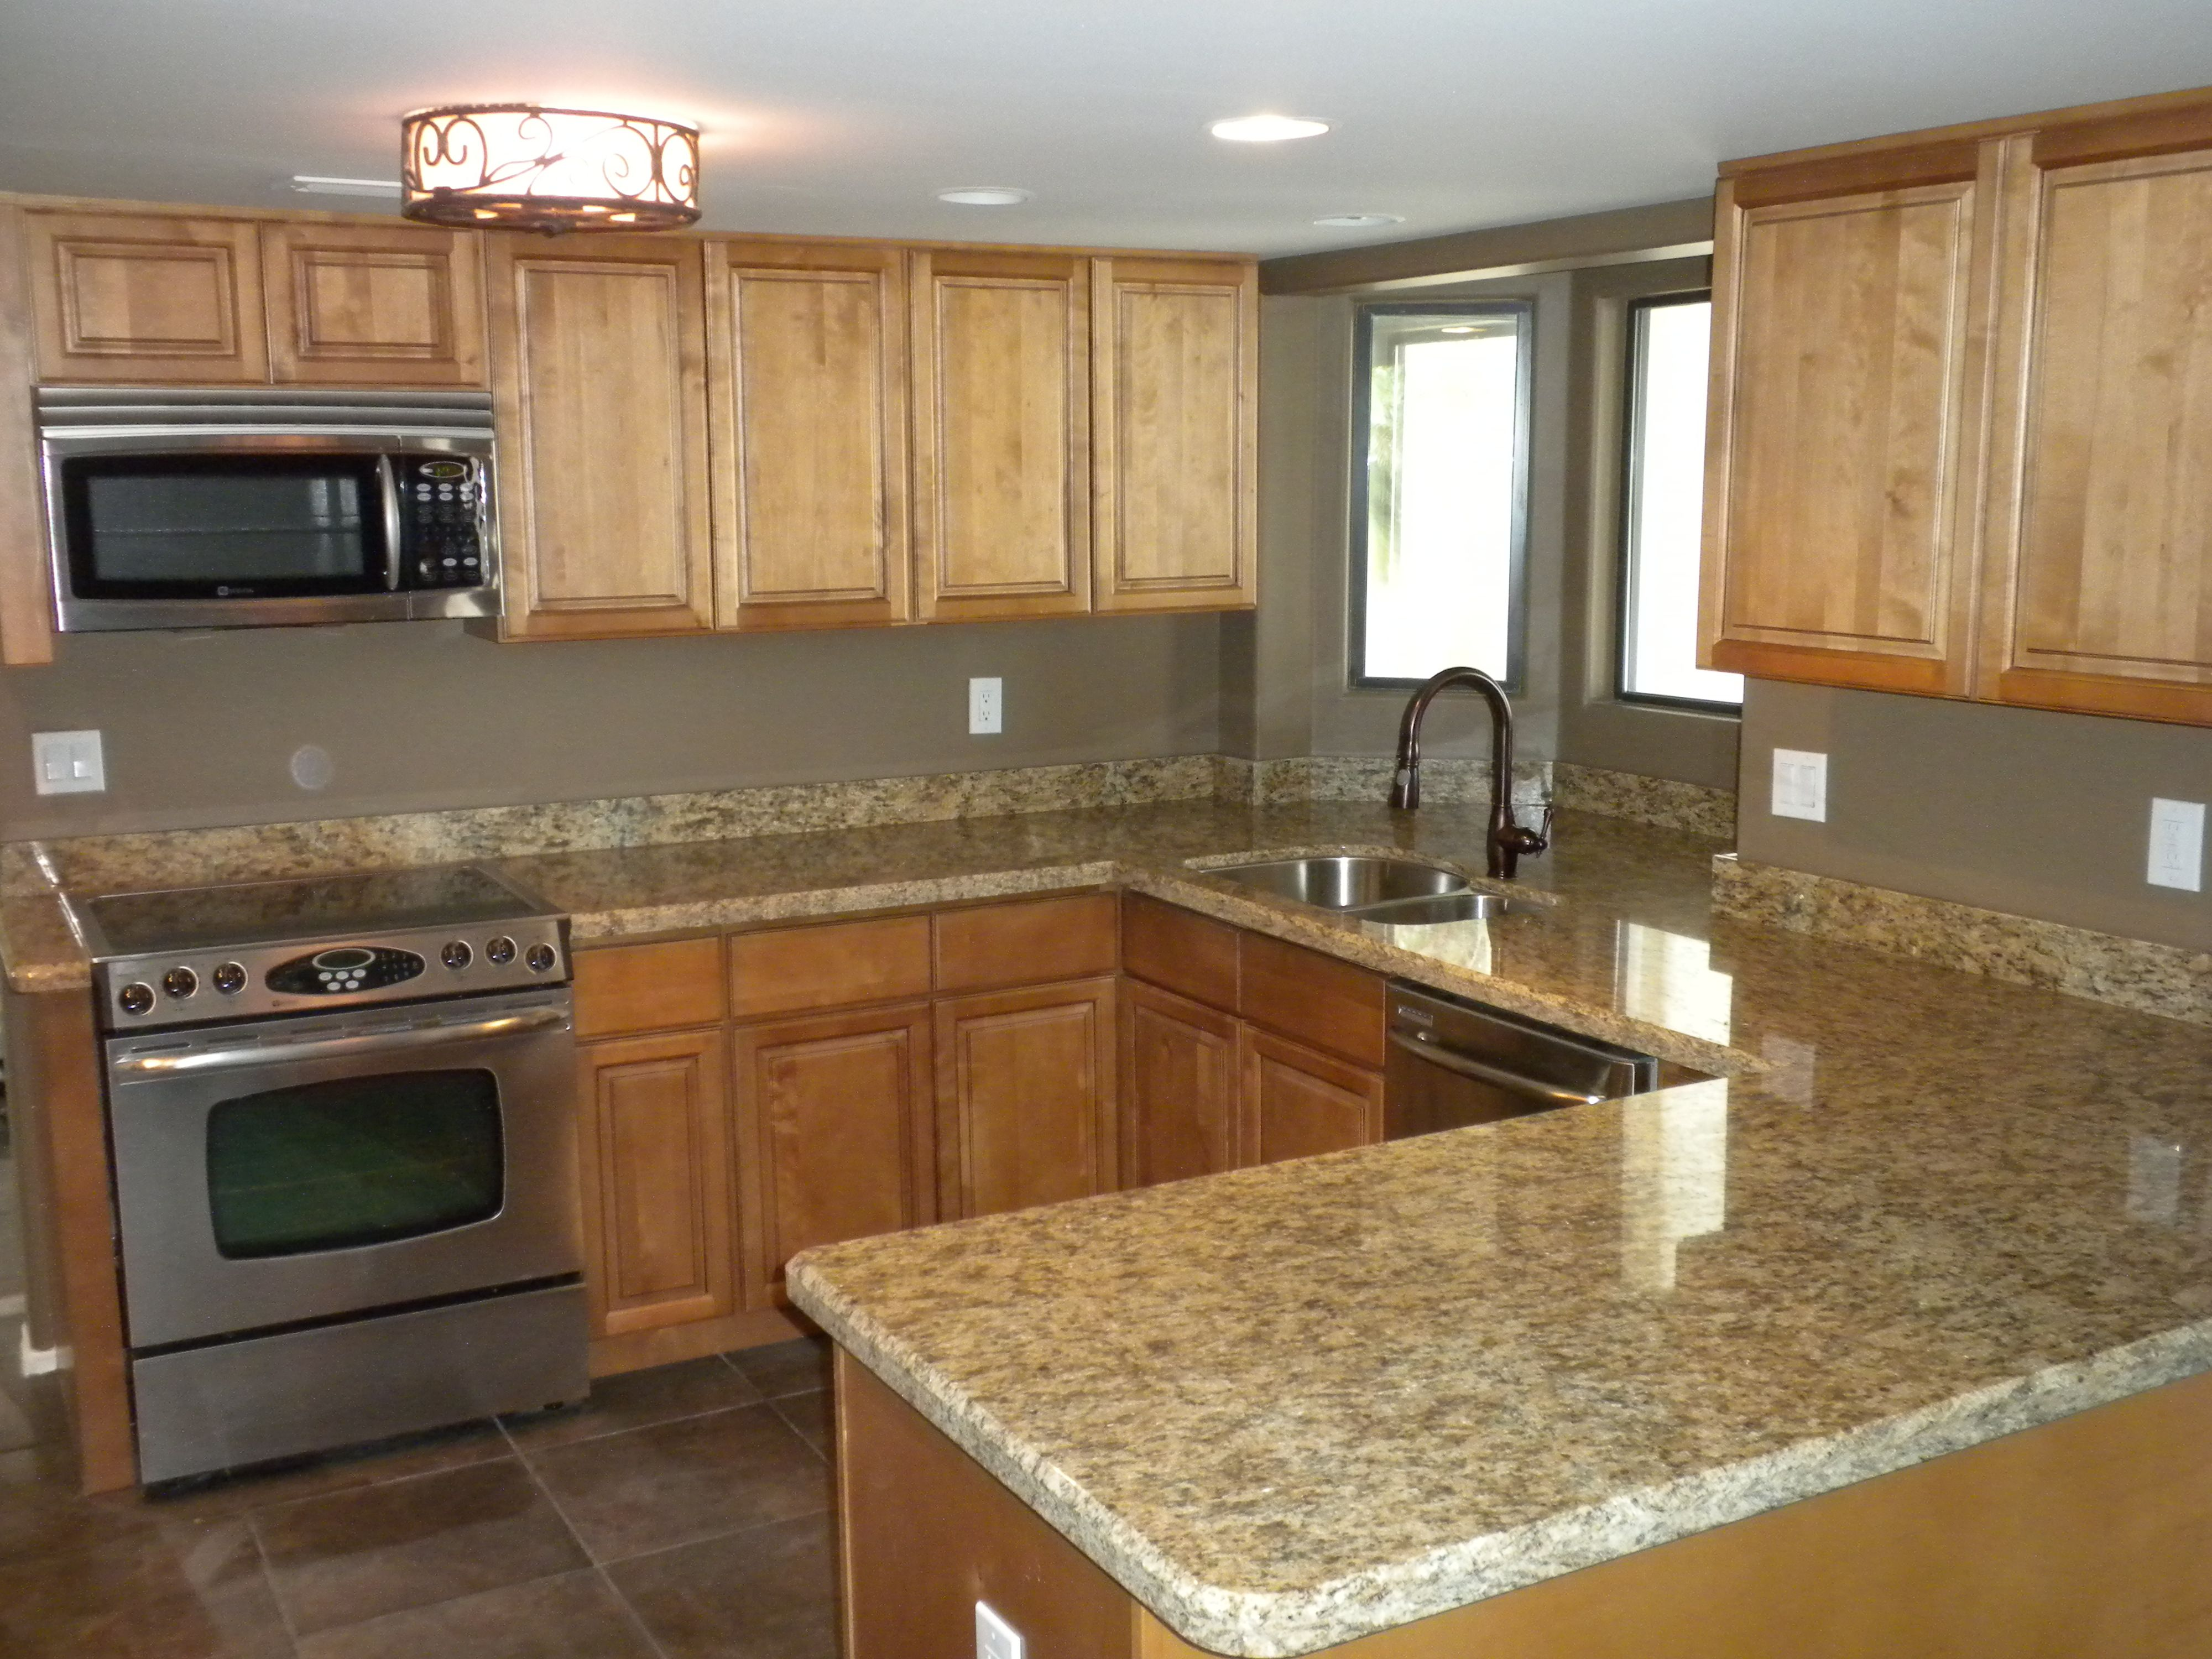 Maple Kitchen Cabinets With Marble Countertops Light Maple Cabinets With Chocolate Glaze And Santa